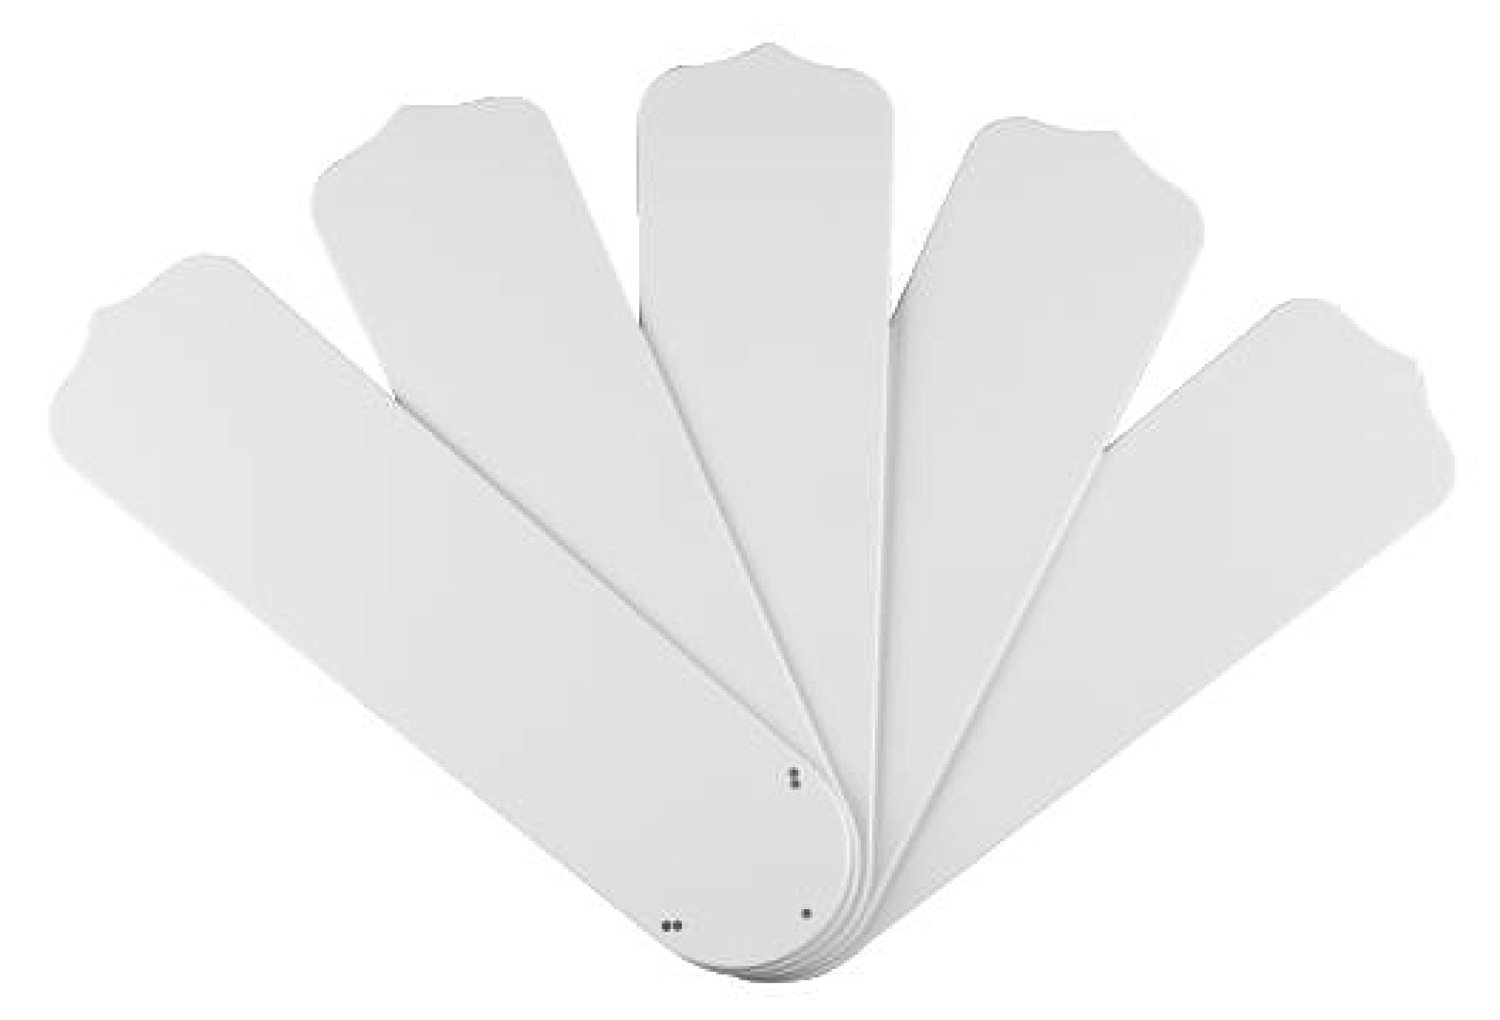 Wellington 7741400 52-Inch White Outdoor Replacement Fan Blades, Five-Pack